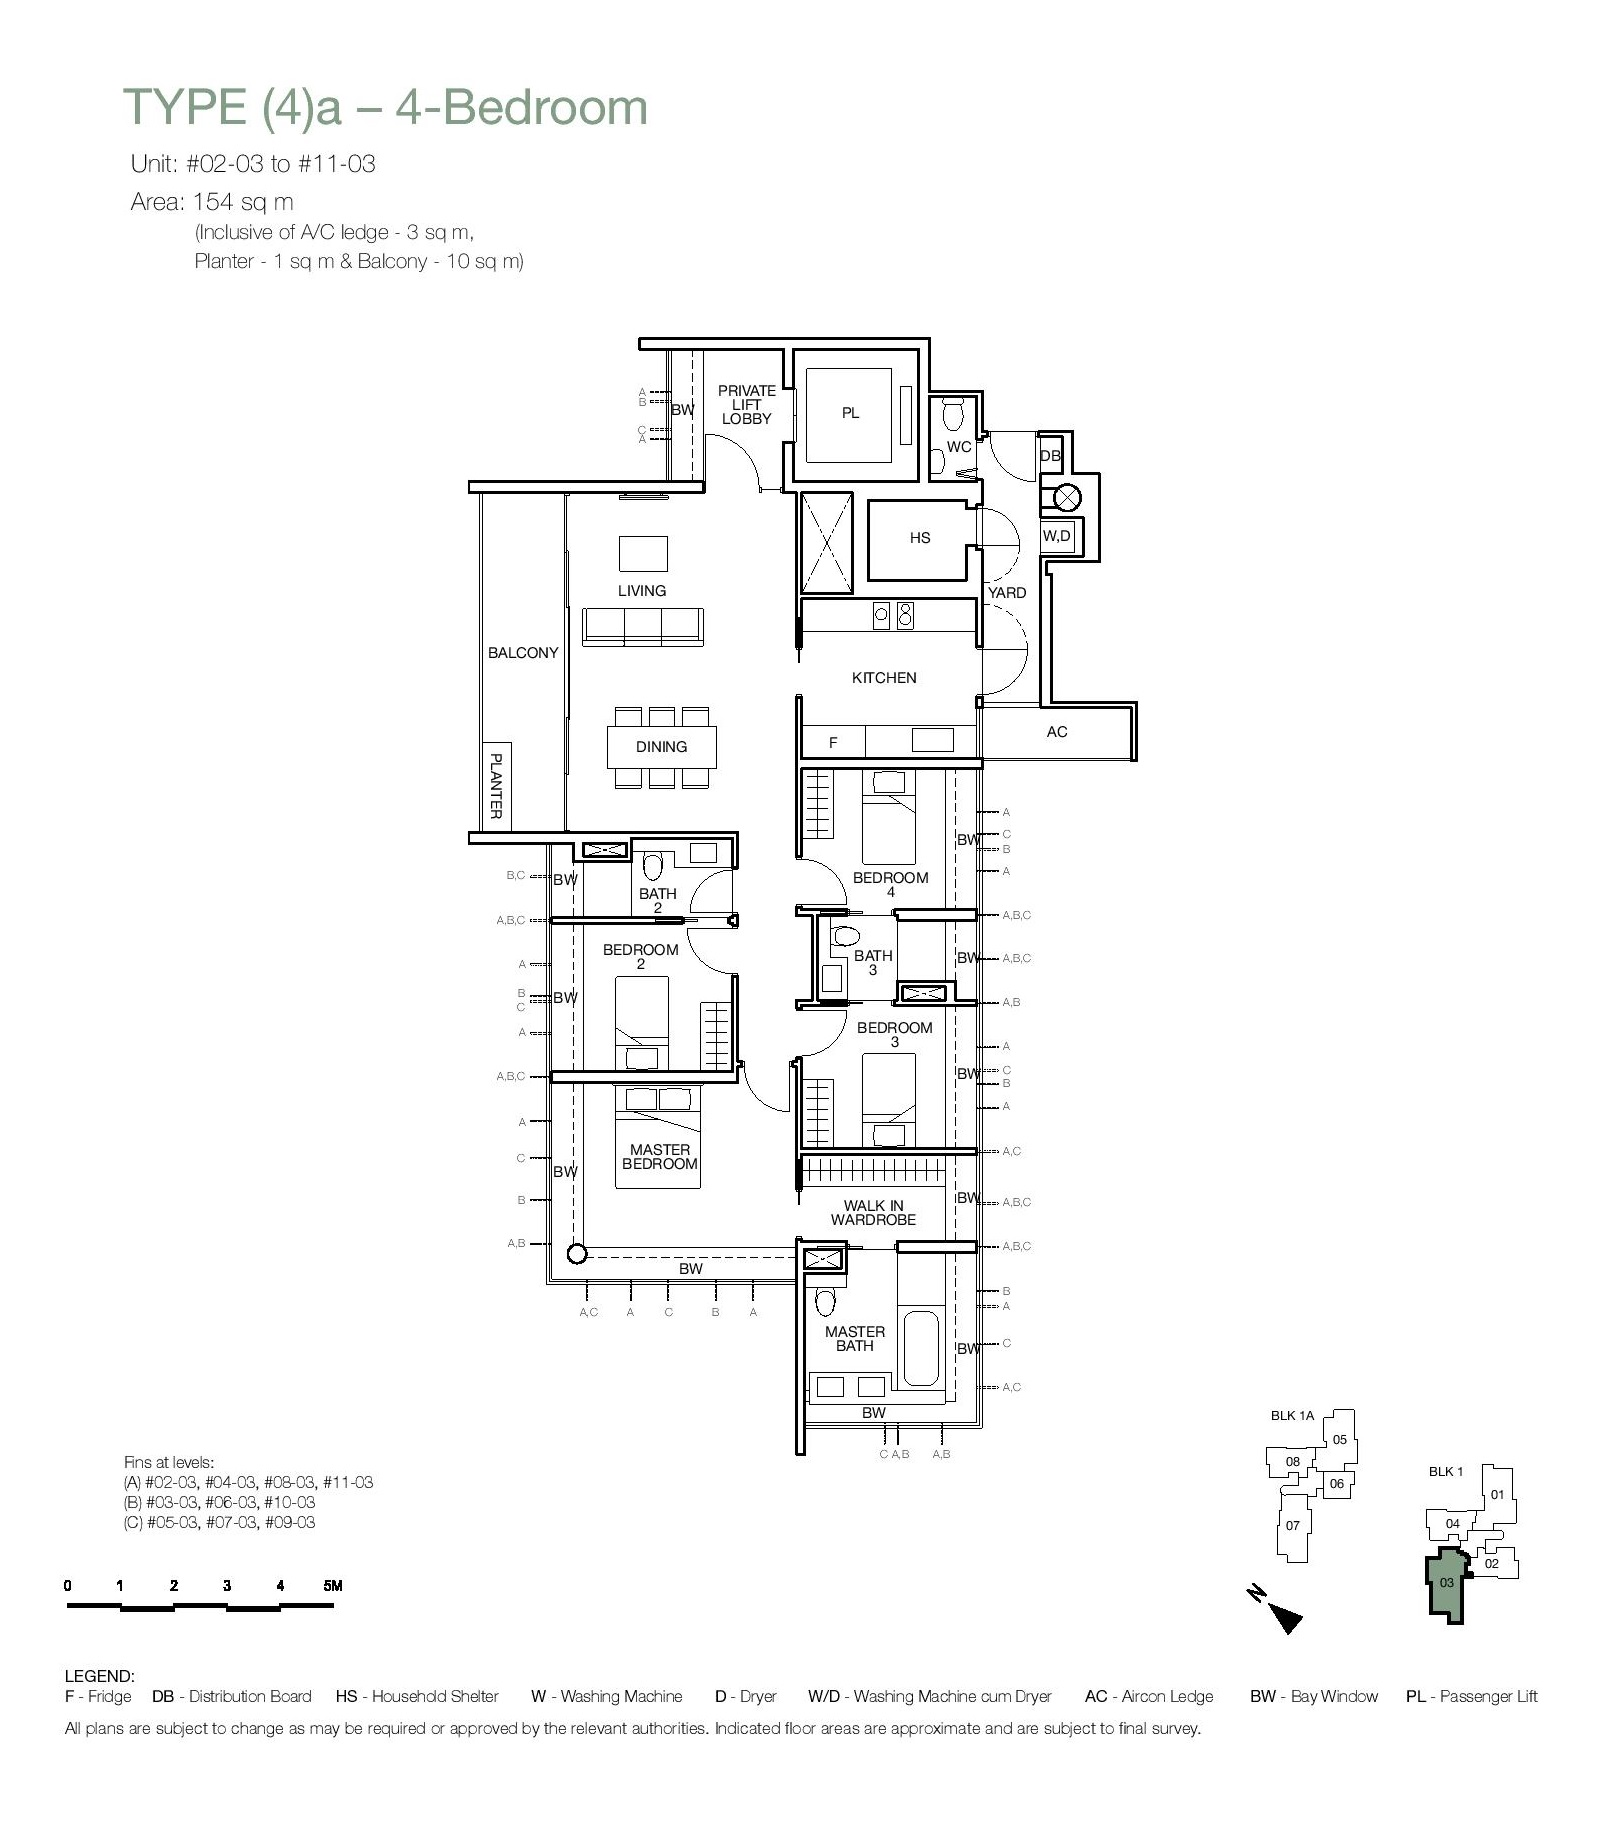 One Balmoral 4 Bedroom Floor Type (4)a Plans